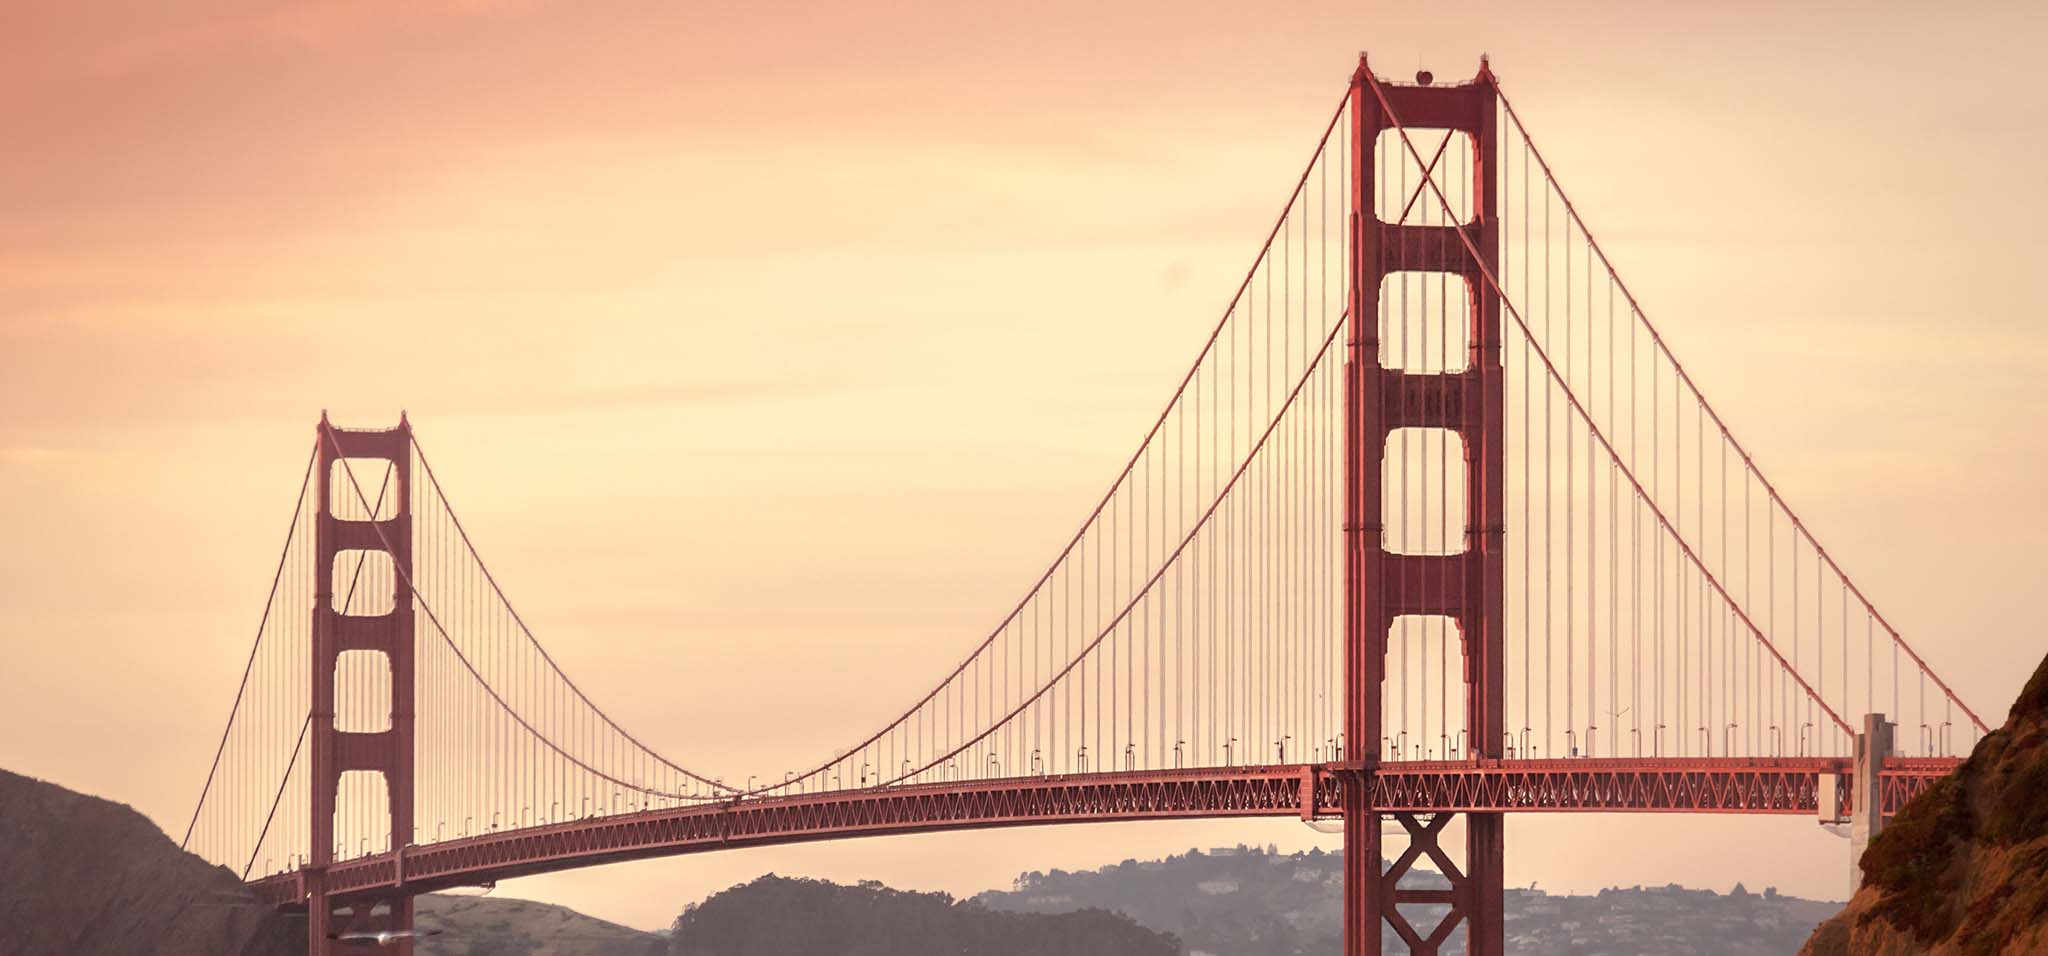 Meditate in San Francisco on Insight Timer